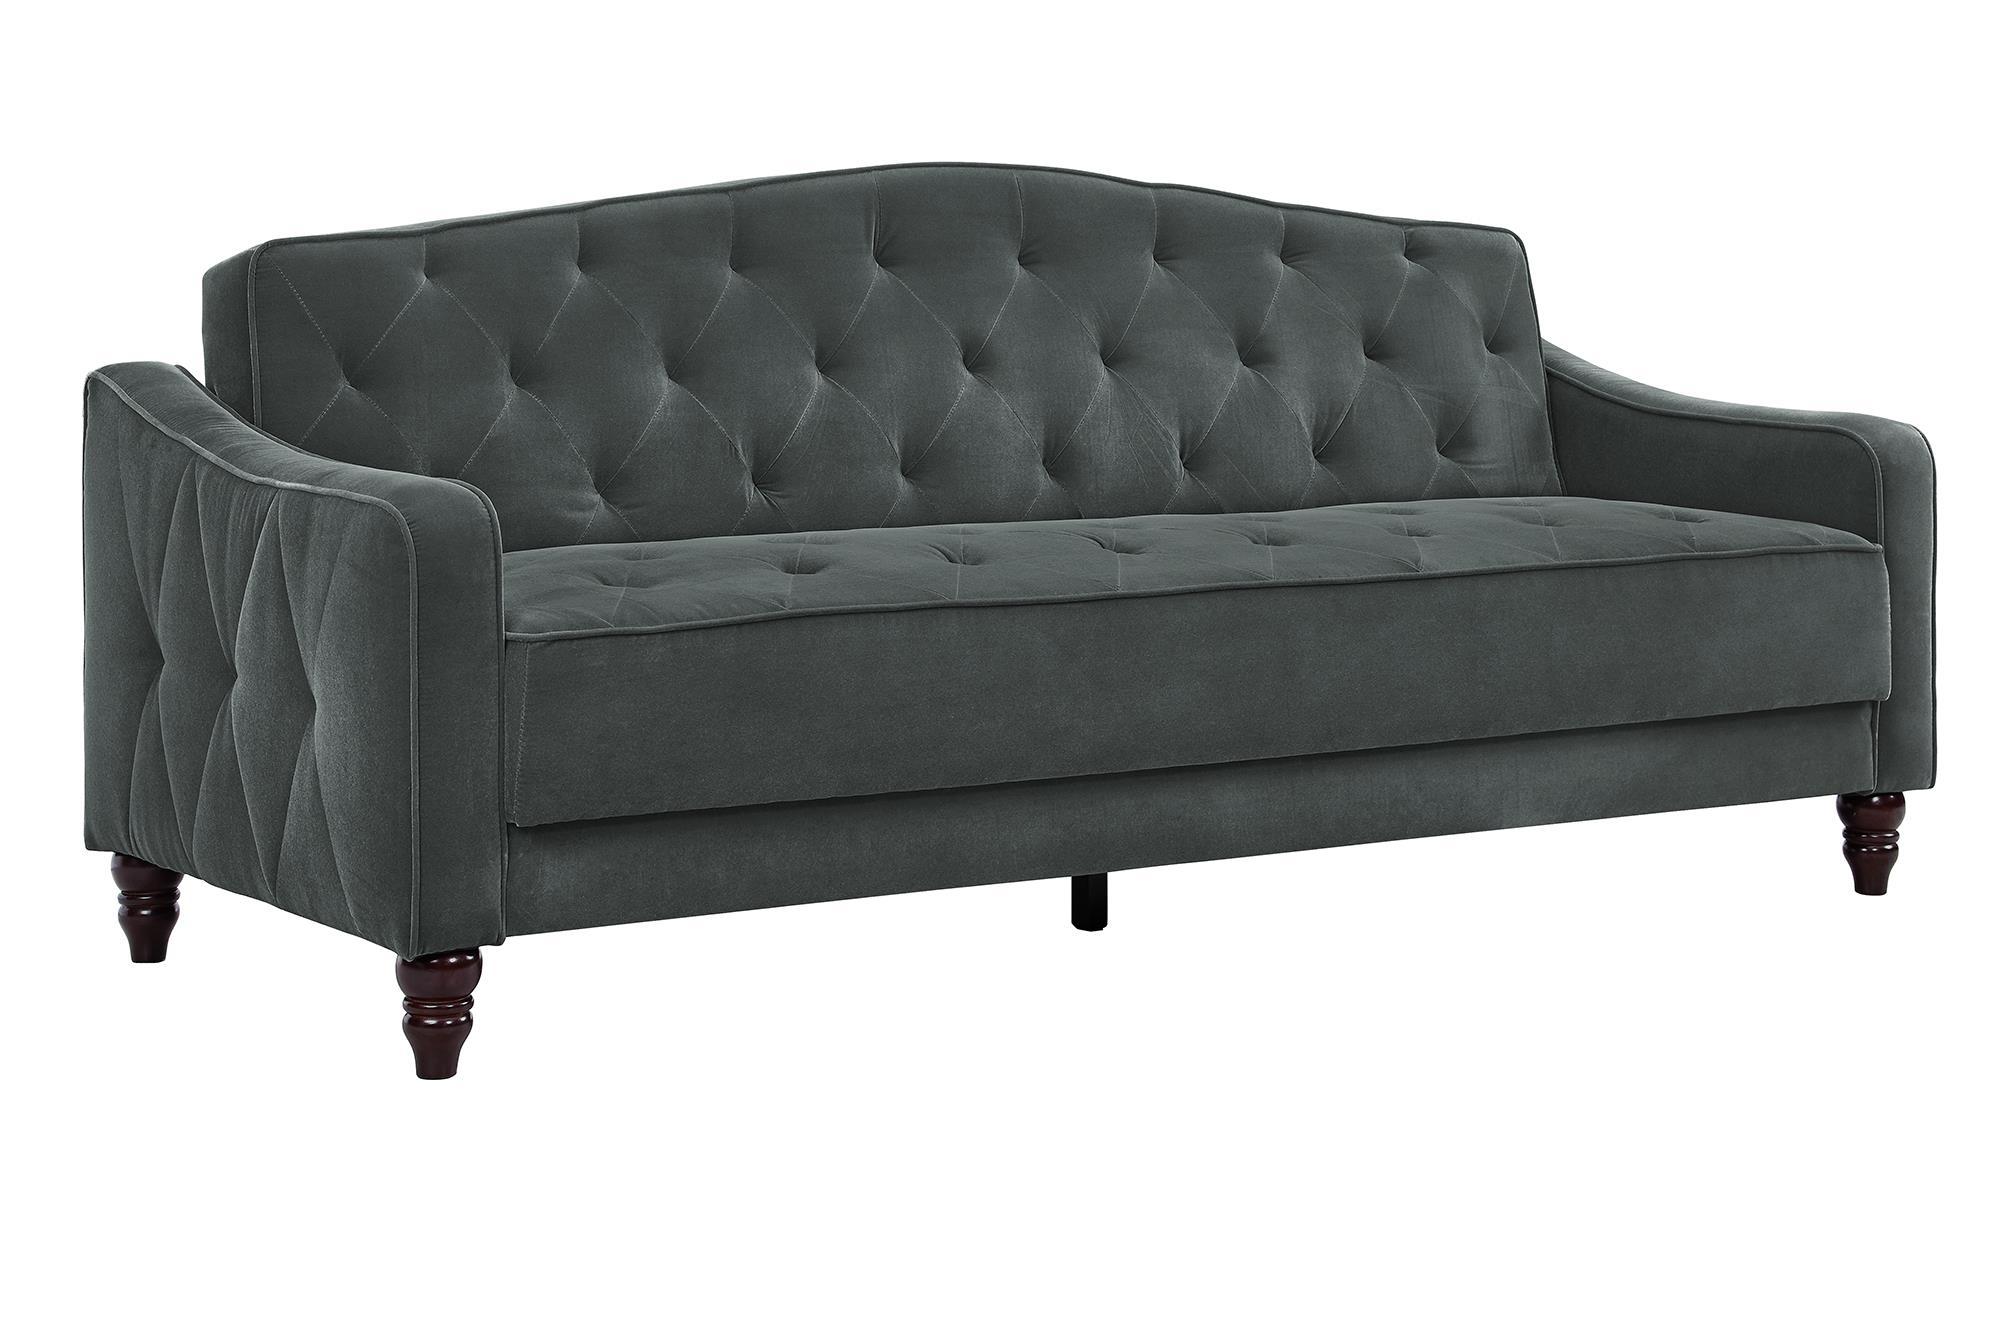 Couch Sofa Novogratz Vintage Tufted Sofa Sleeper Ii Multiple Colors